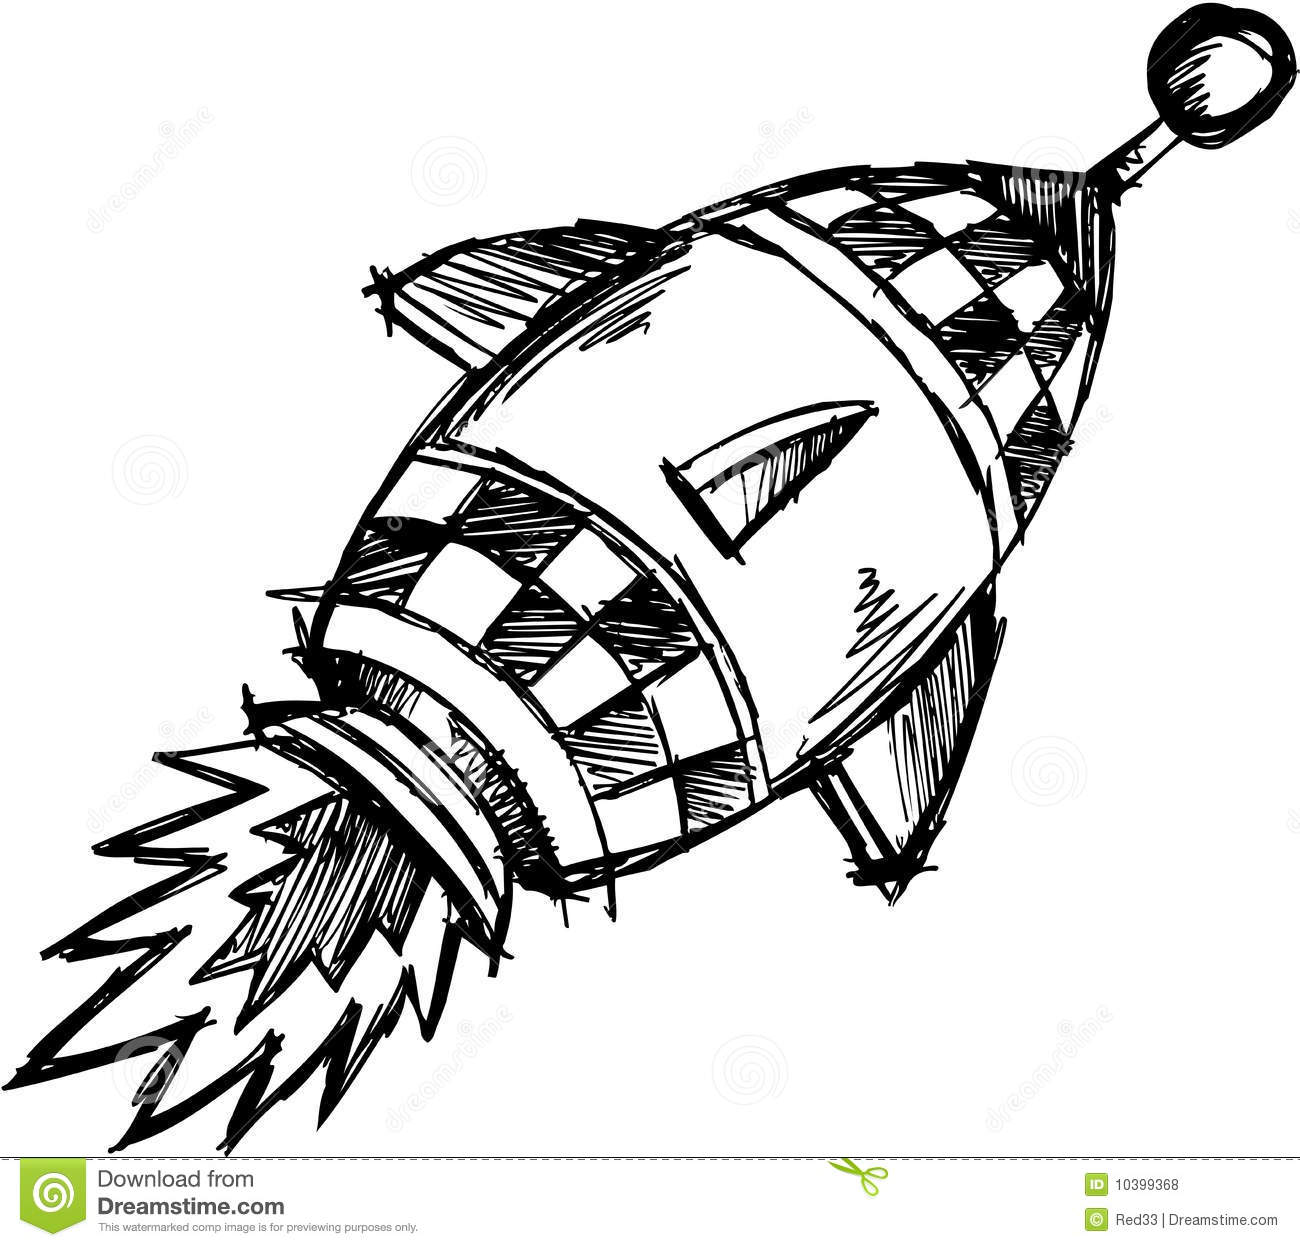 Sketchy Rocket Vector Illustration Royalty Free Stock